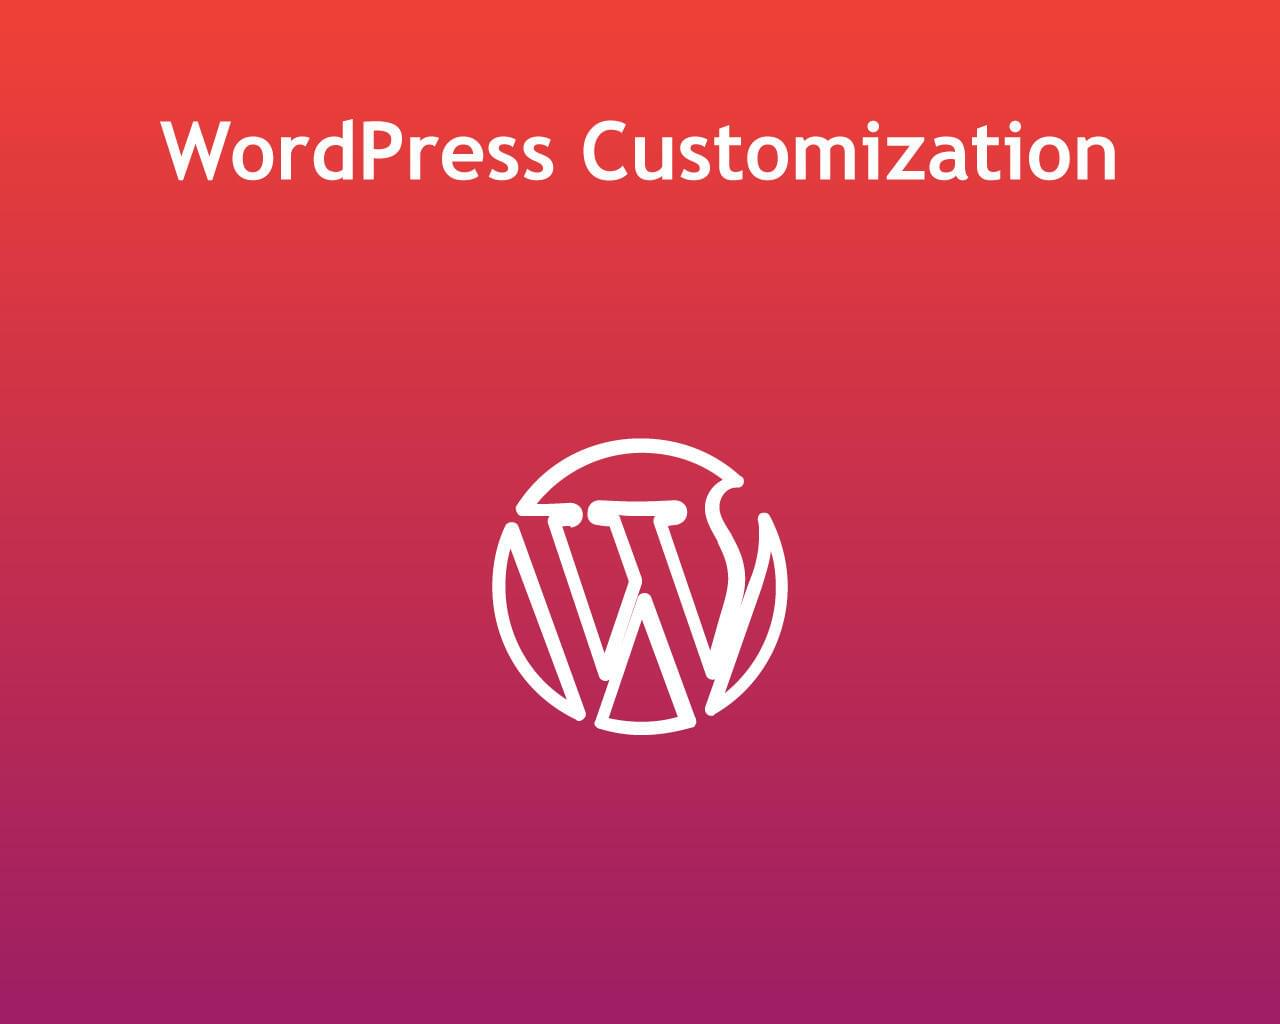 WordPress Website Customization Service by jitendra-sahu - 117803